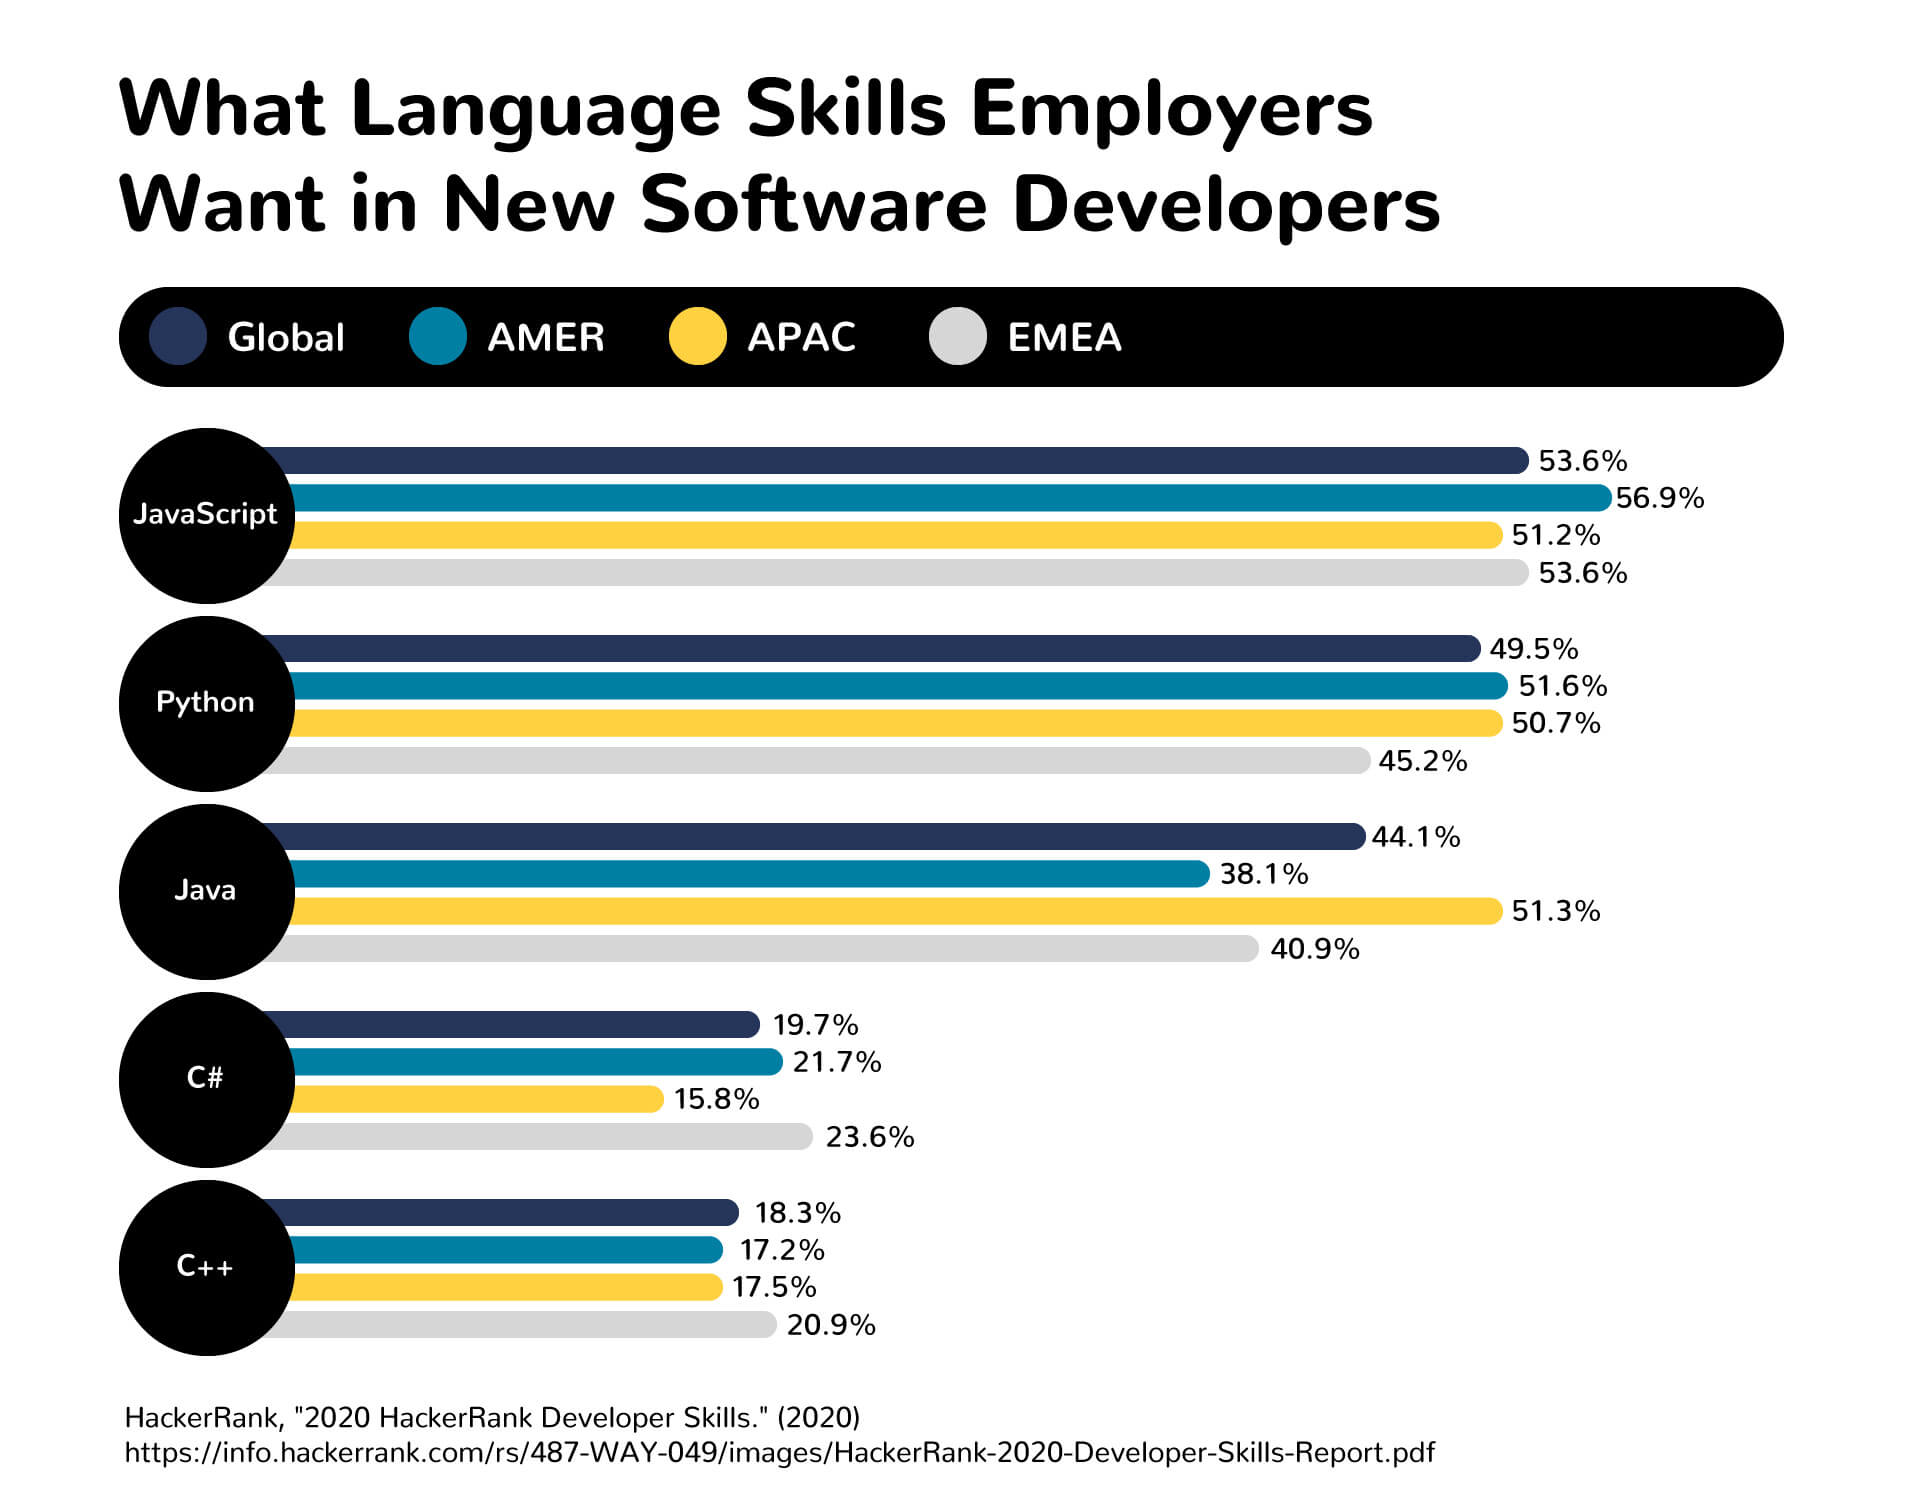 A graph showing what language skills employers want in new software developer hires